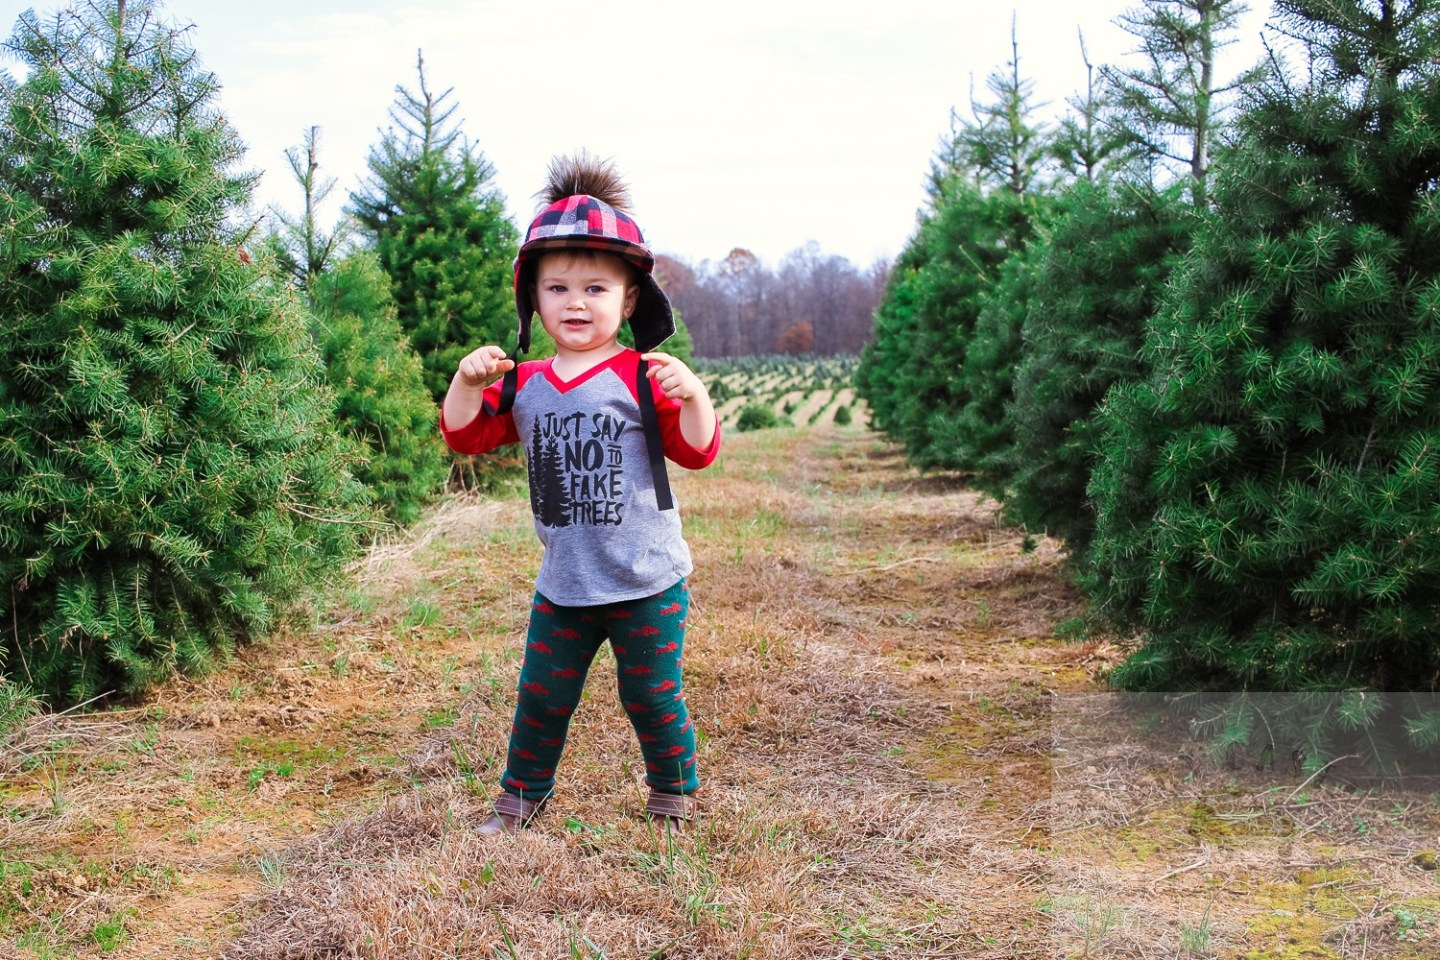 The Top 3 Christmas Tree Farms in Washington DC to Visit featured by top Washington DC blog, Baby Castan on Board: picture of a toddler at the Moose Apple Christmas tree farm